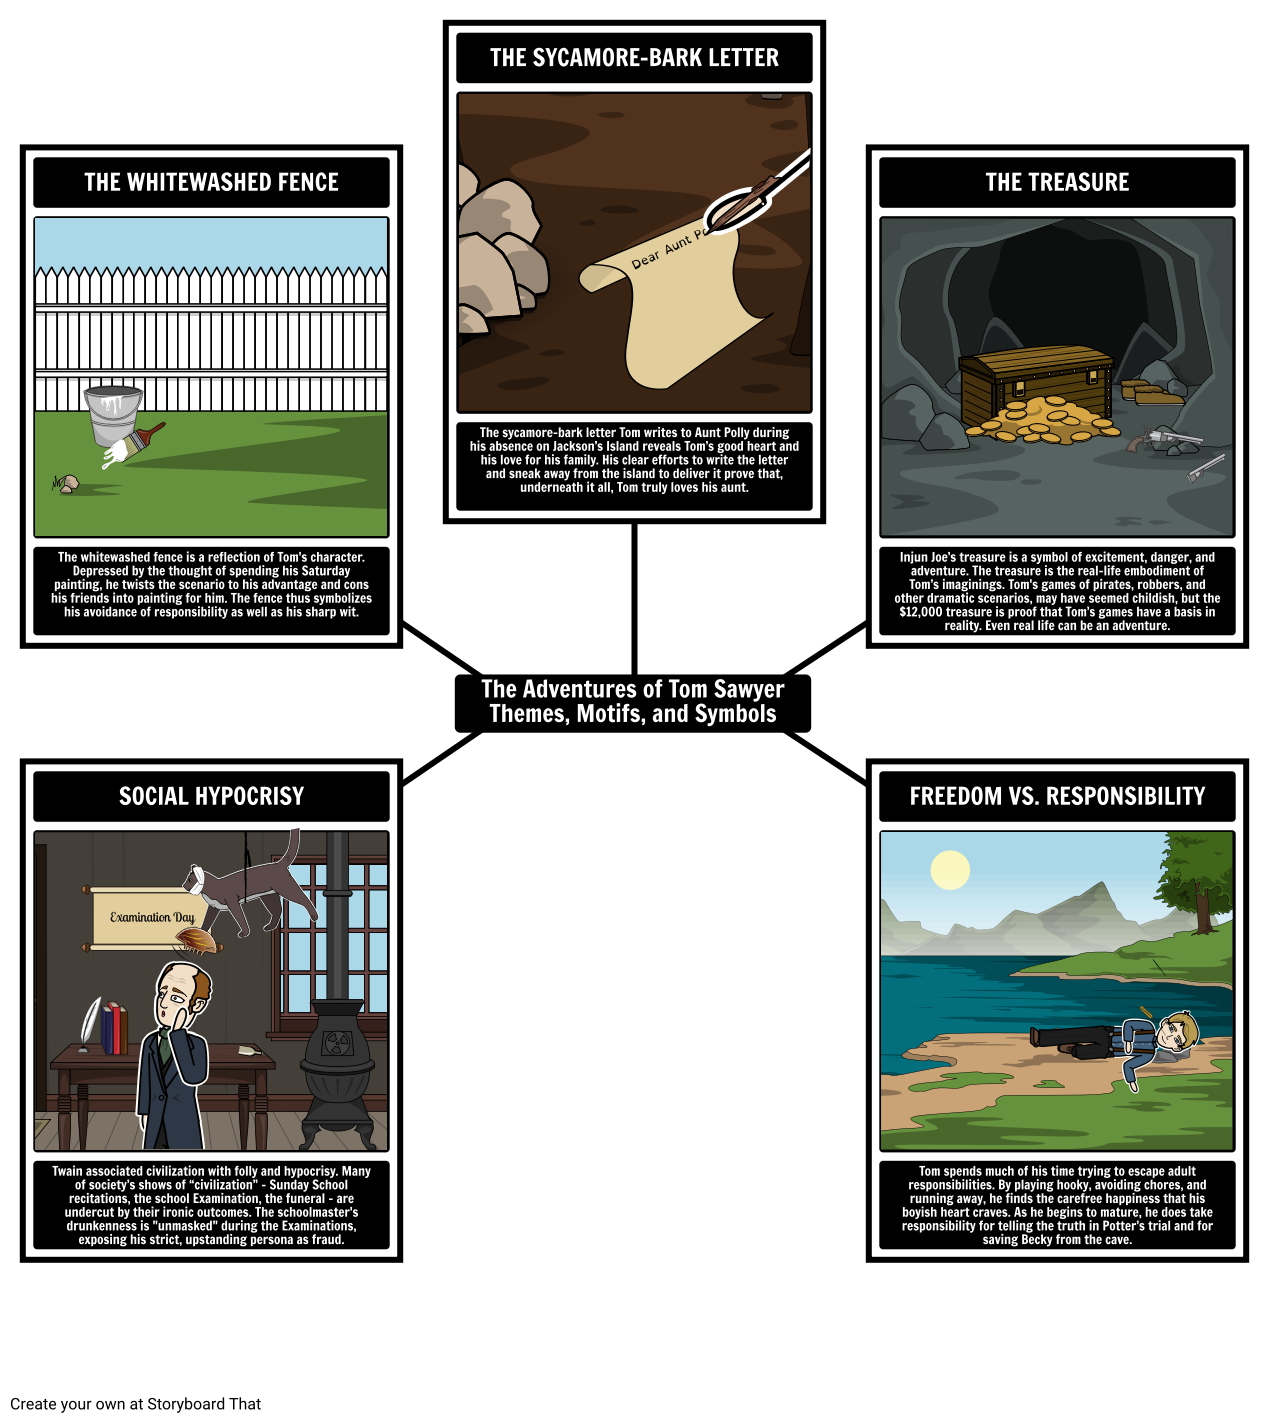 a summary of adventures of tom sawyer The adventures of tom sawyer by mark twain background tom sawyer introduced one of the most famous characters in all of literaturehe is introduced in this book and reappears in the adventures of huckleberry finn.